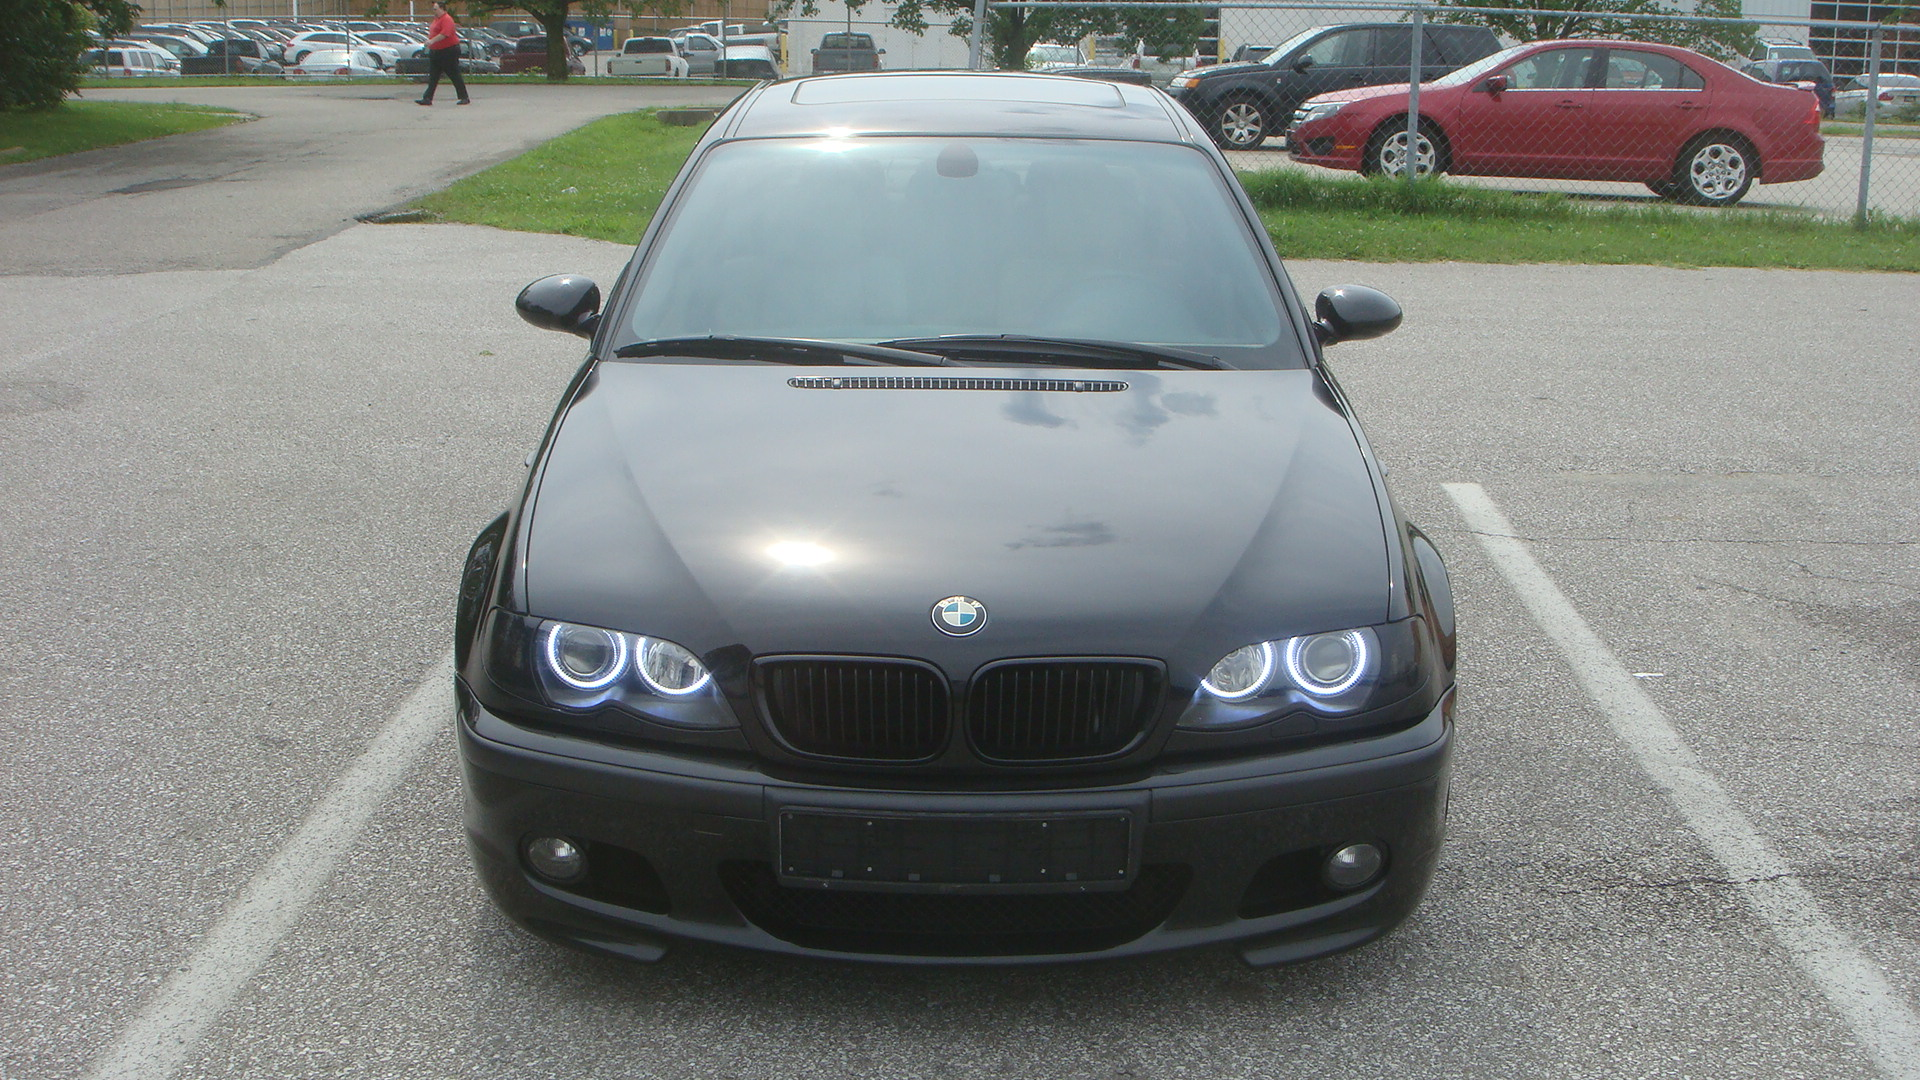 For Sale Sold 2004 Bmw 330i Zhp Performance Package 6mt